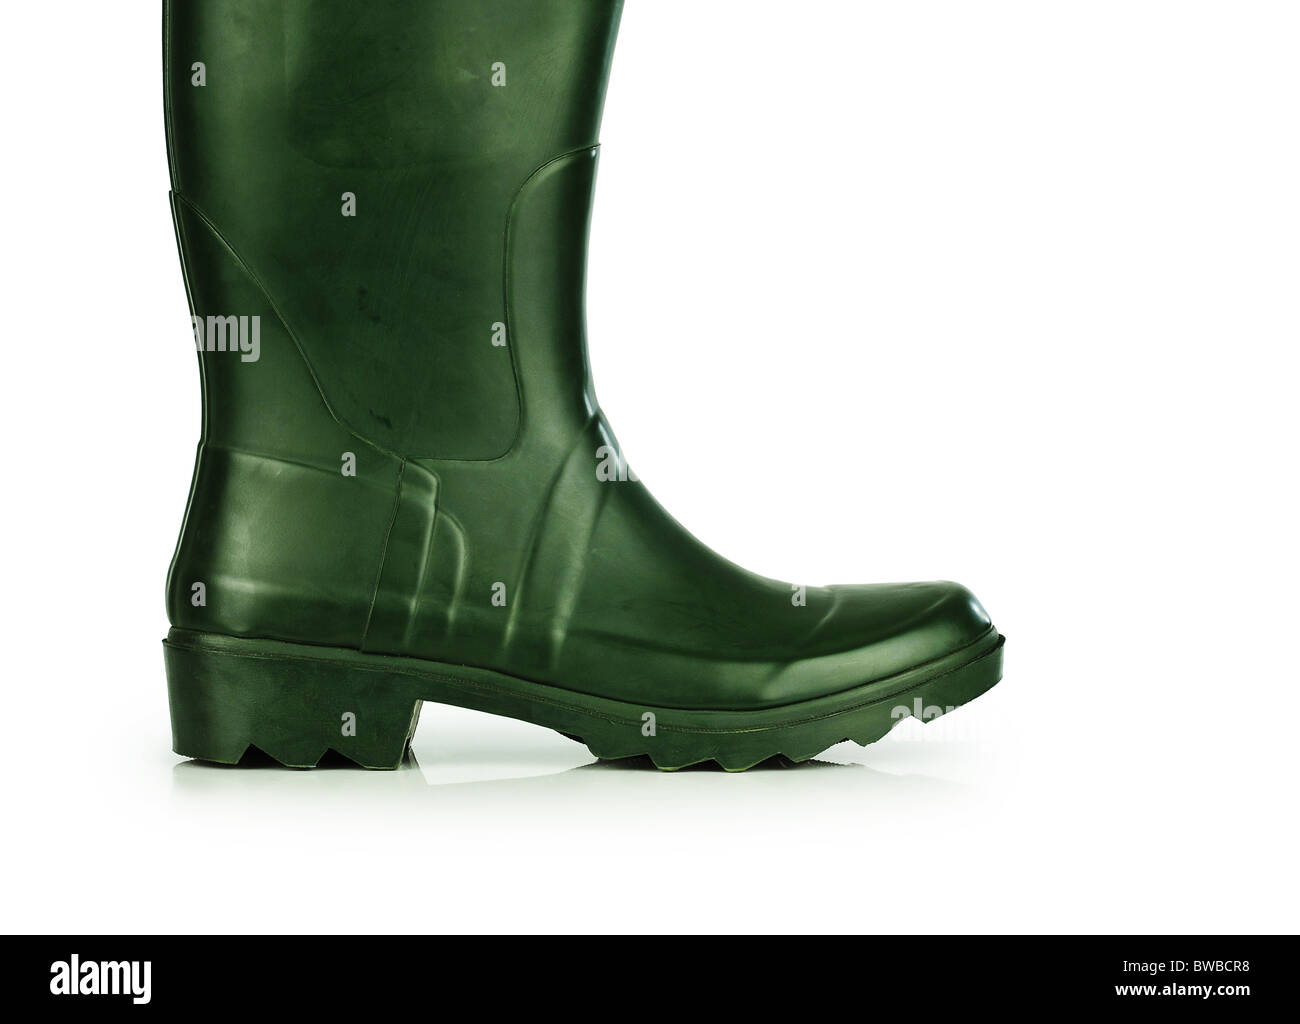 Green rubber boot Stock Photo